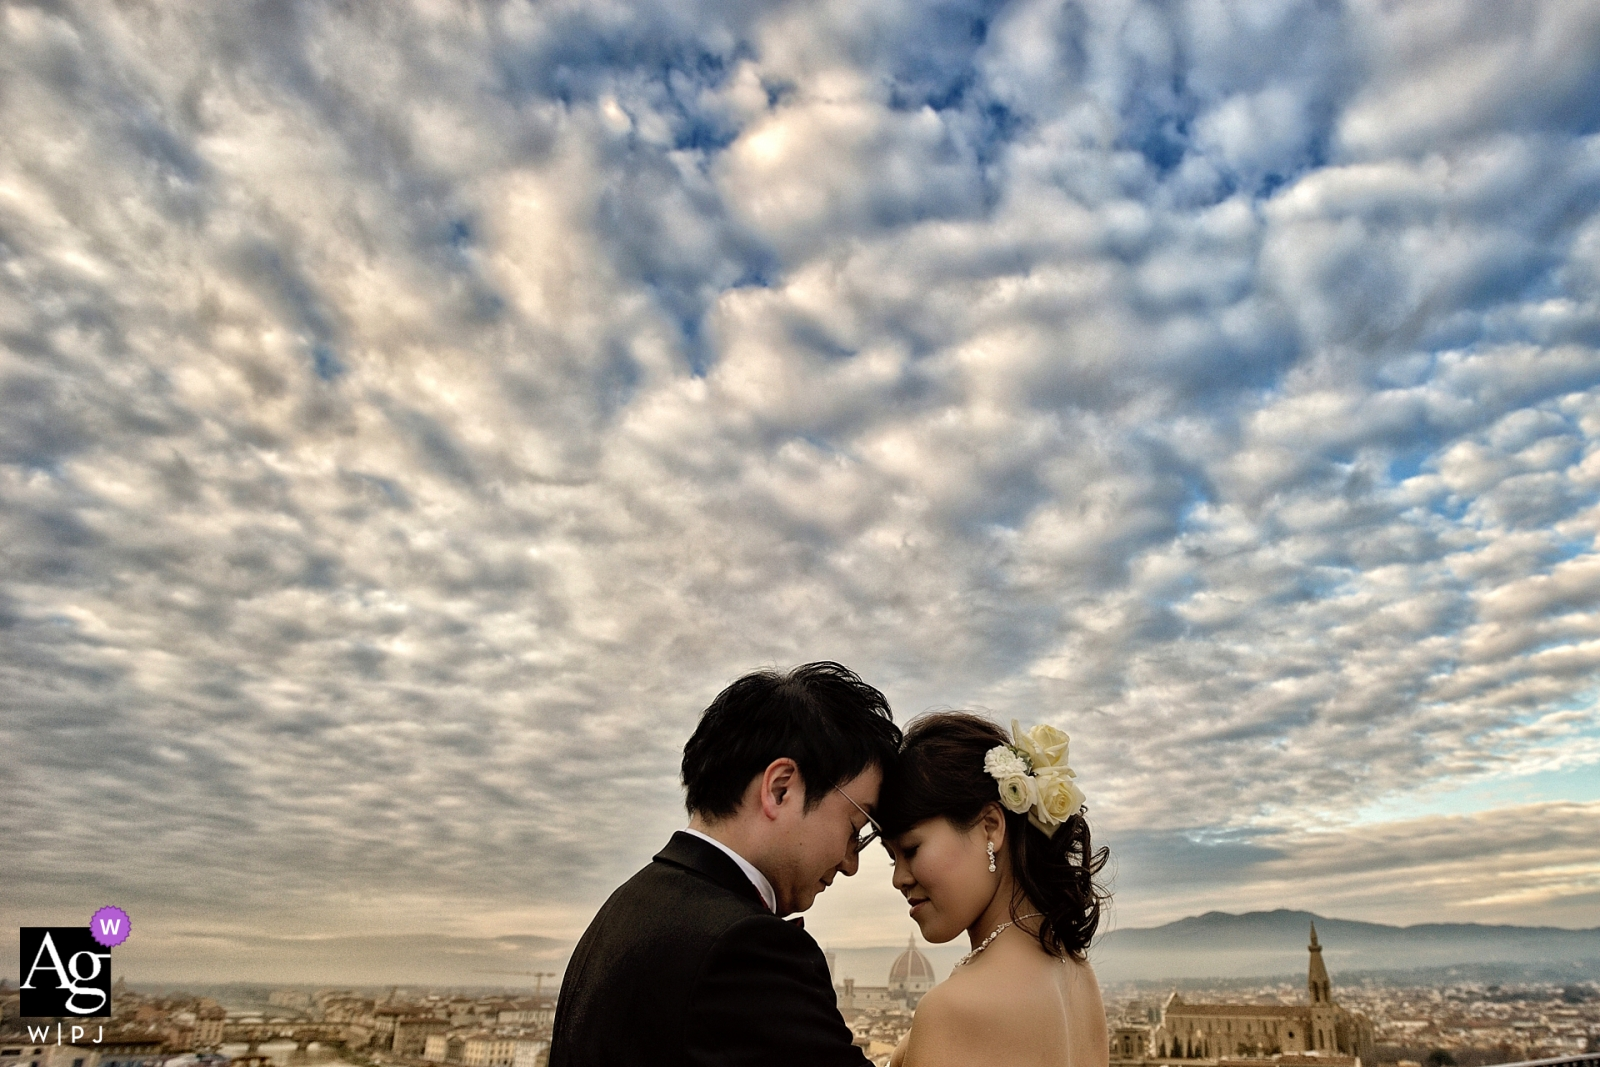 Hotel La Vedetta in Florence wedding photography   Bride and groom 'under' an amazing cloudy sky